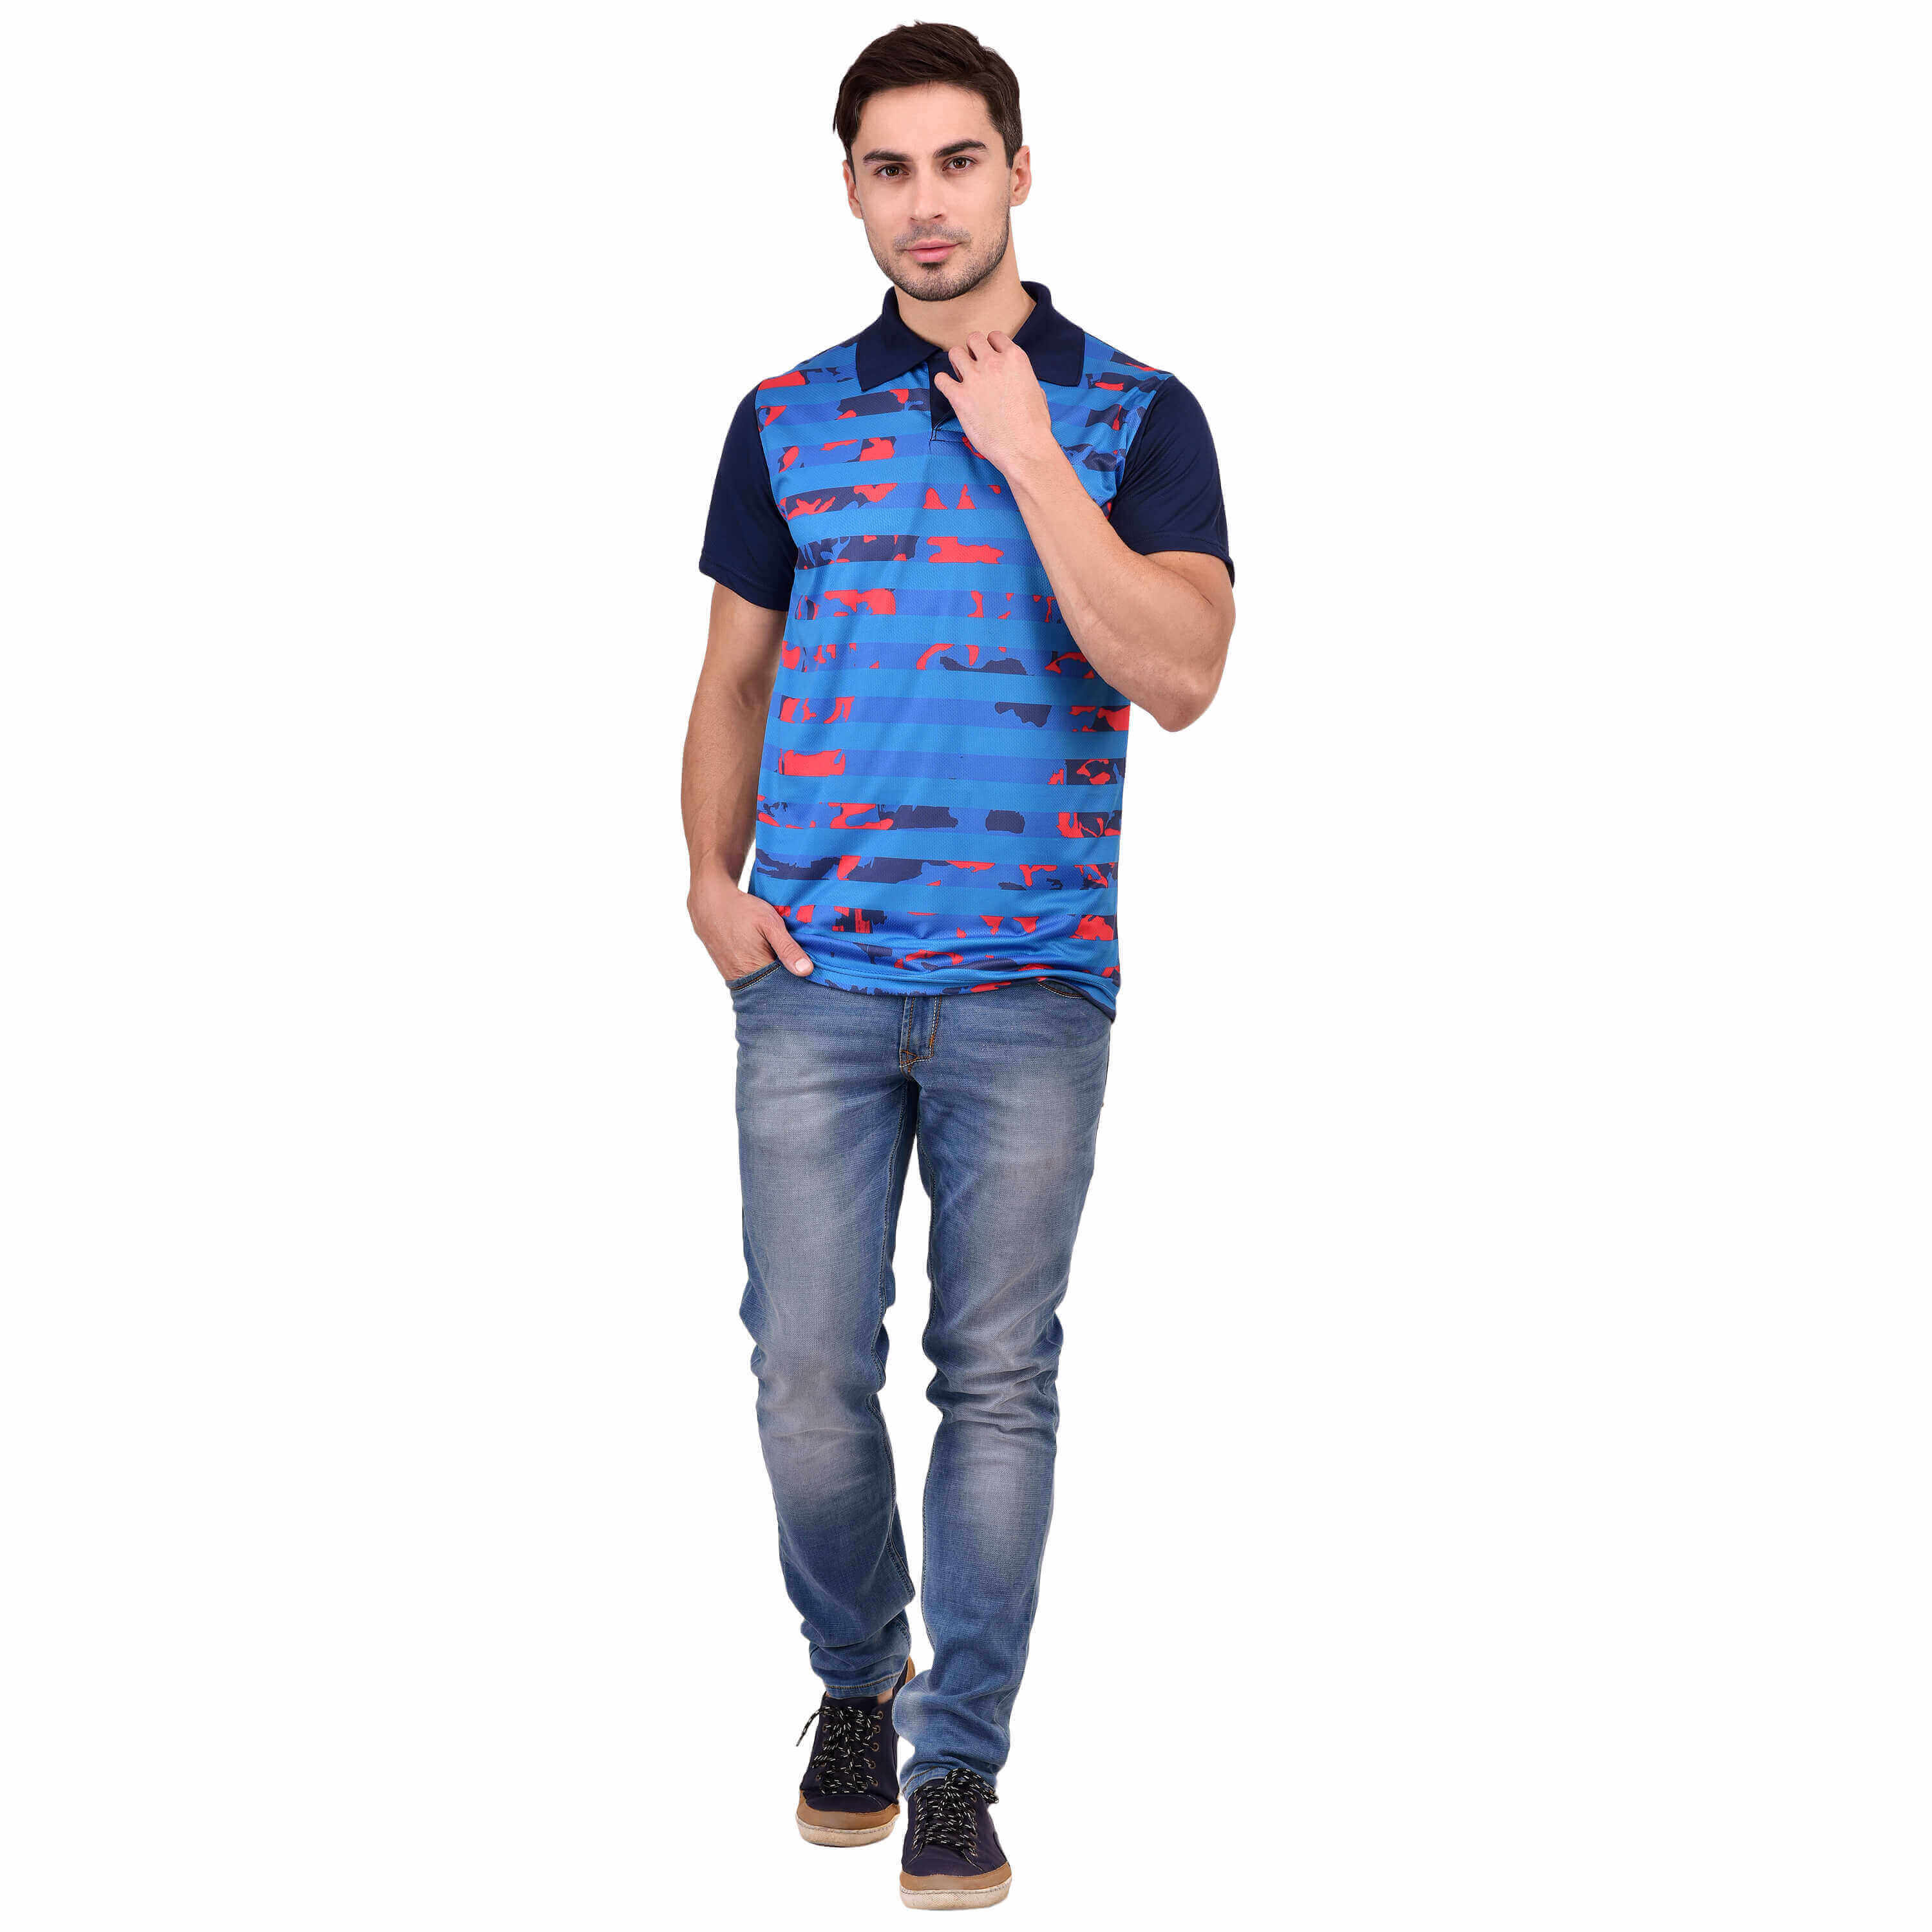 Cool T Shirts Manufacturers in Patna